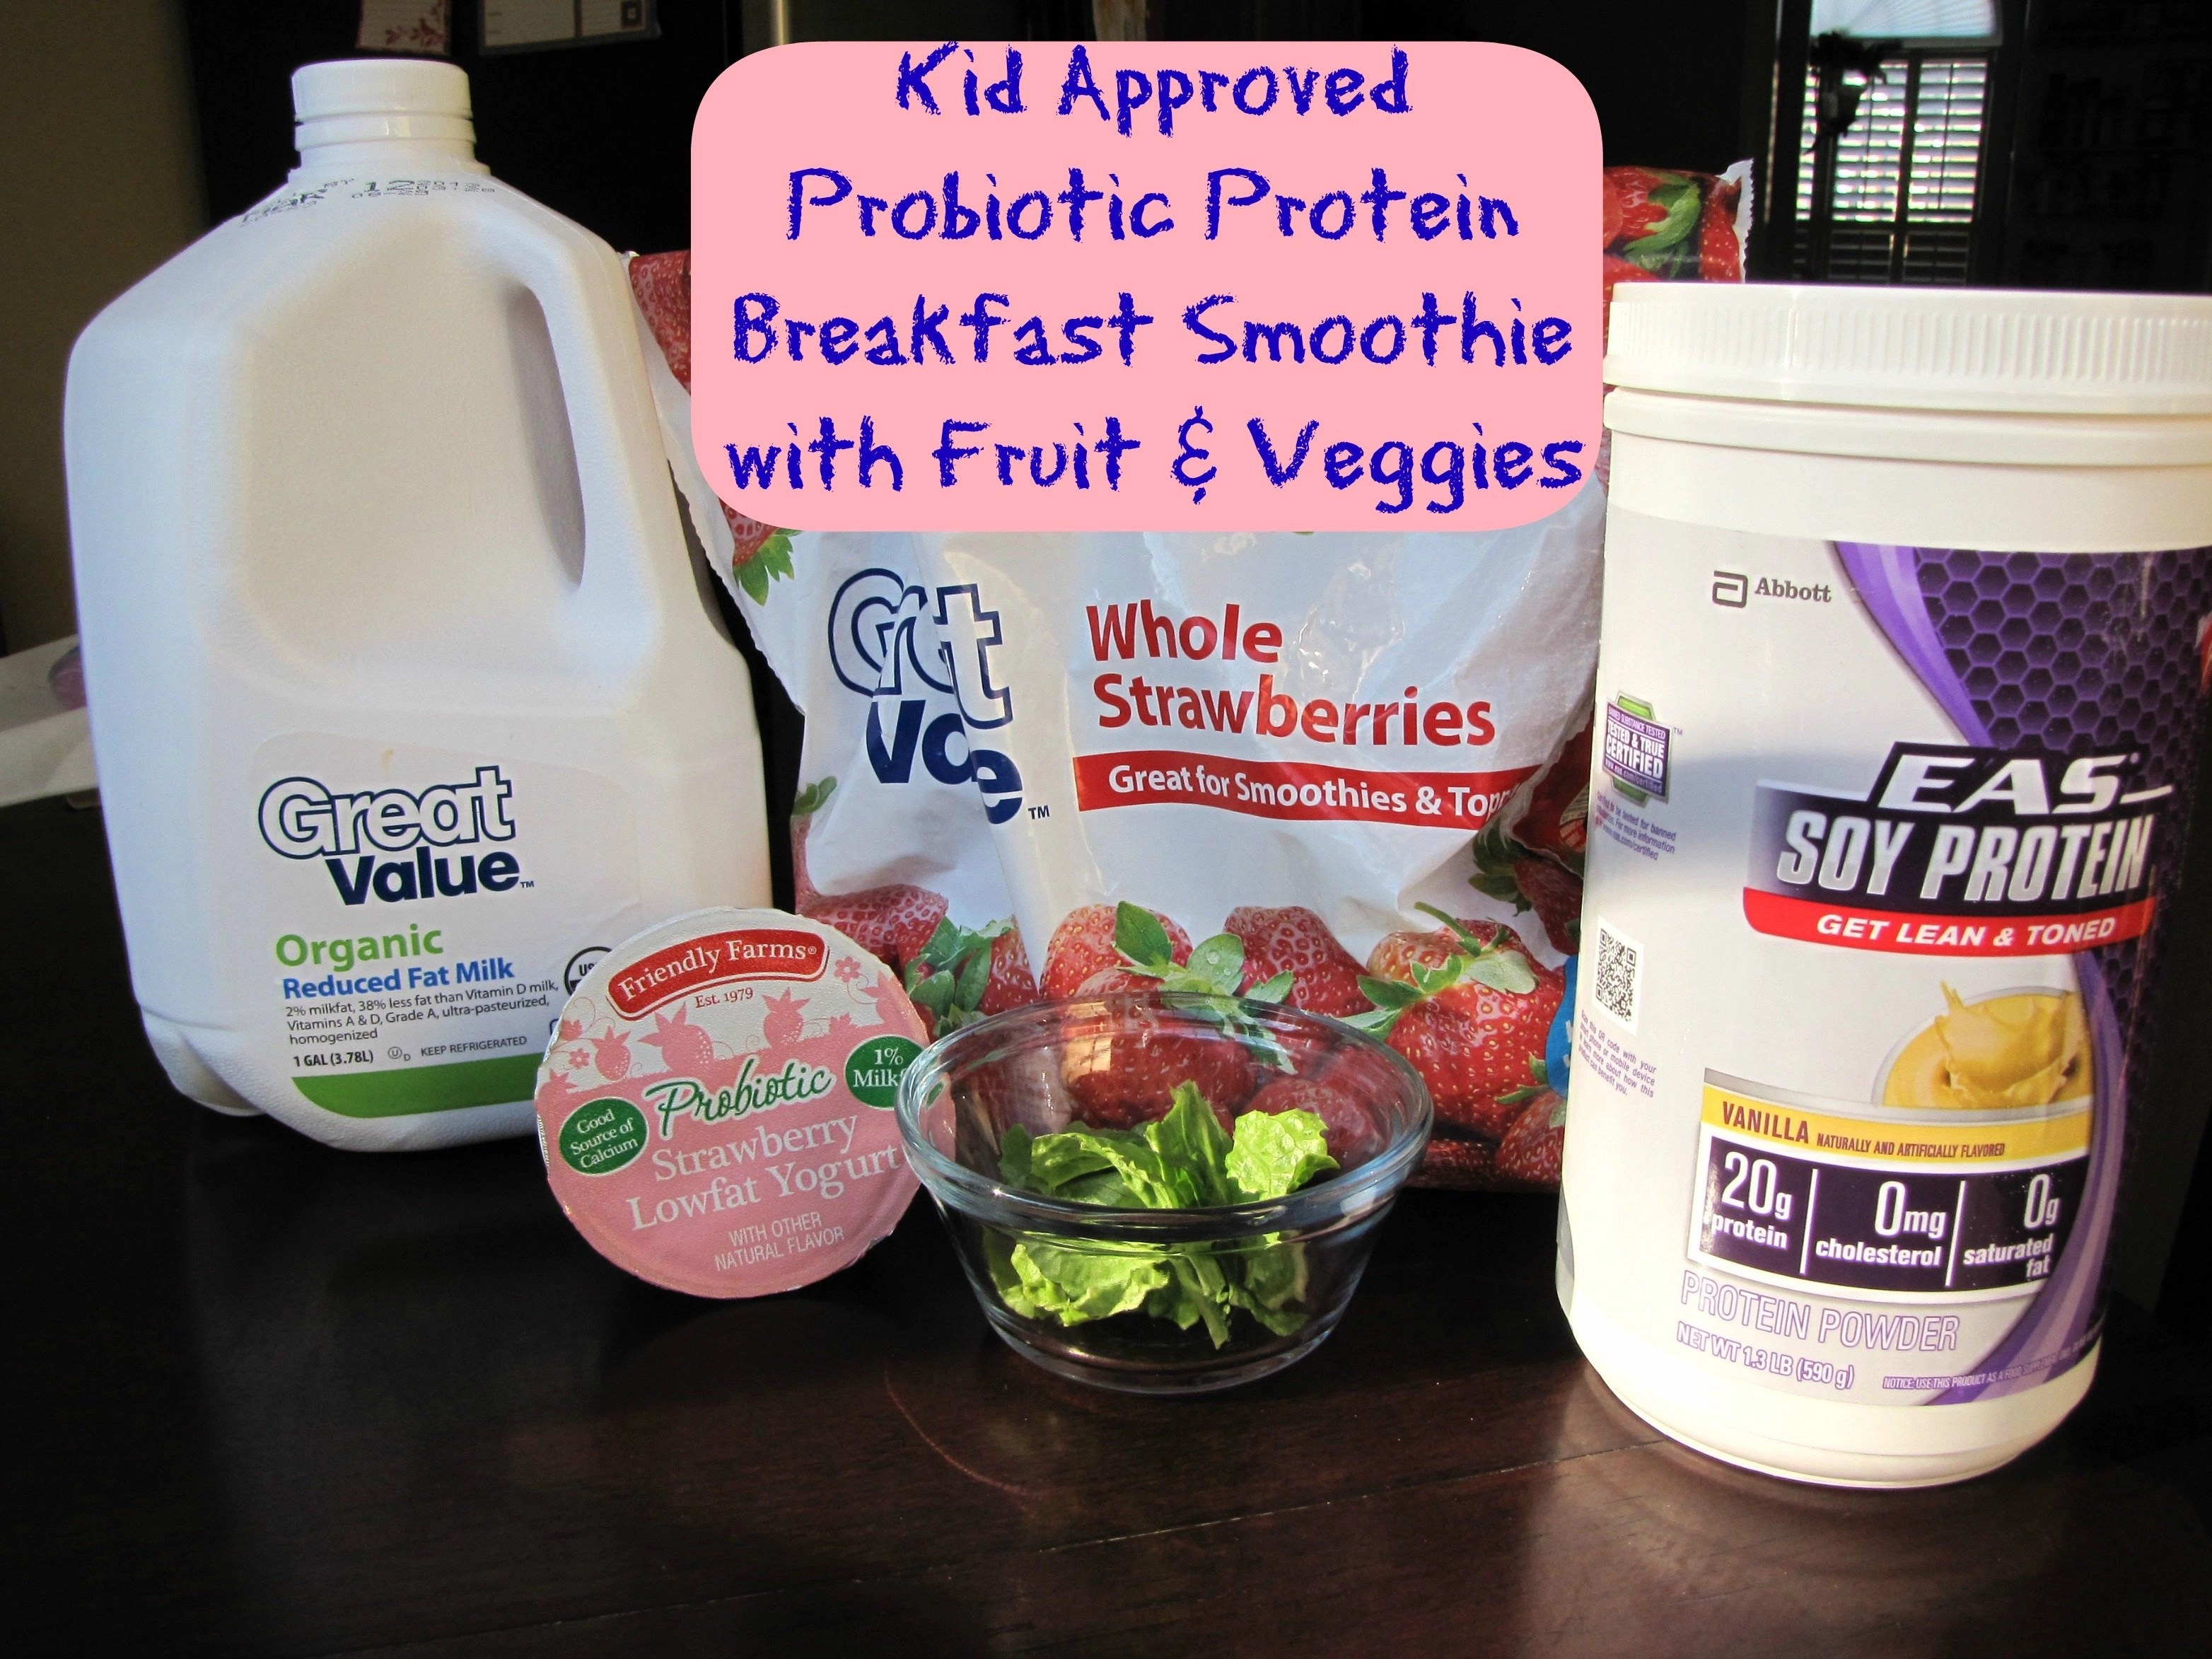 Kid Approved Probiotic Protein Breakfast Smoothie